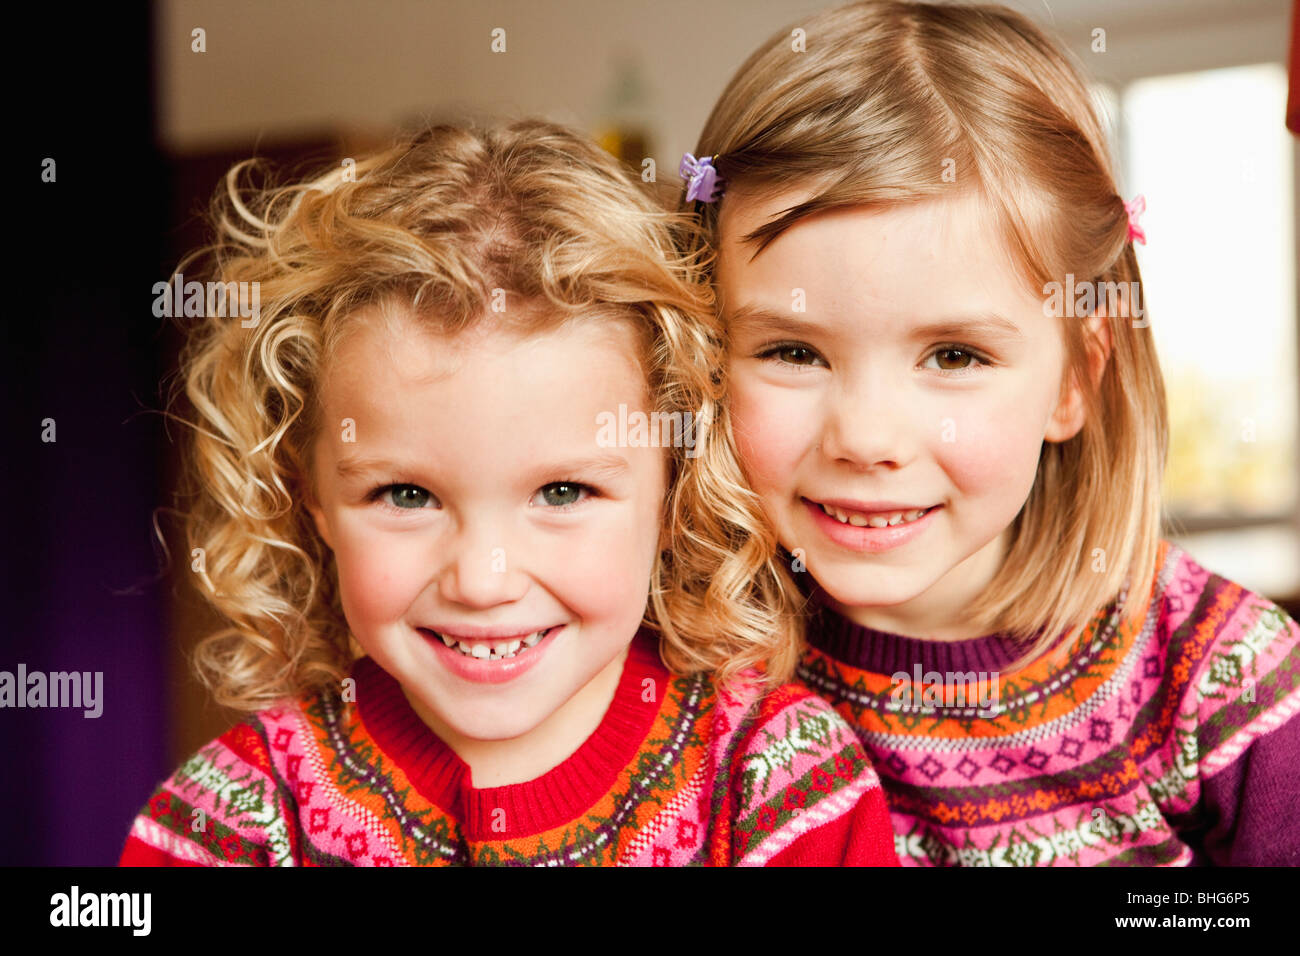 young girls smiling at viewer - Stock Image